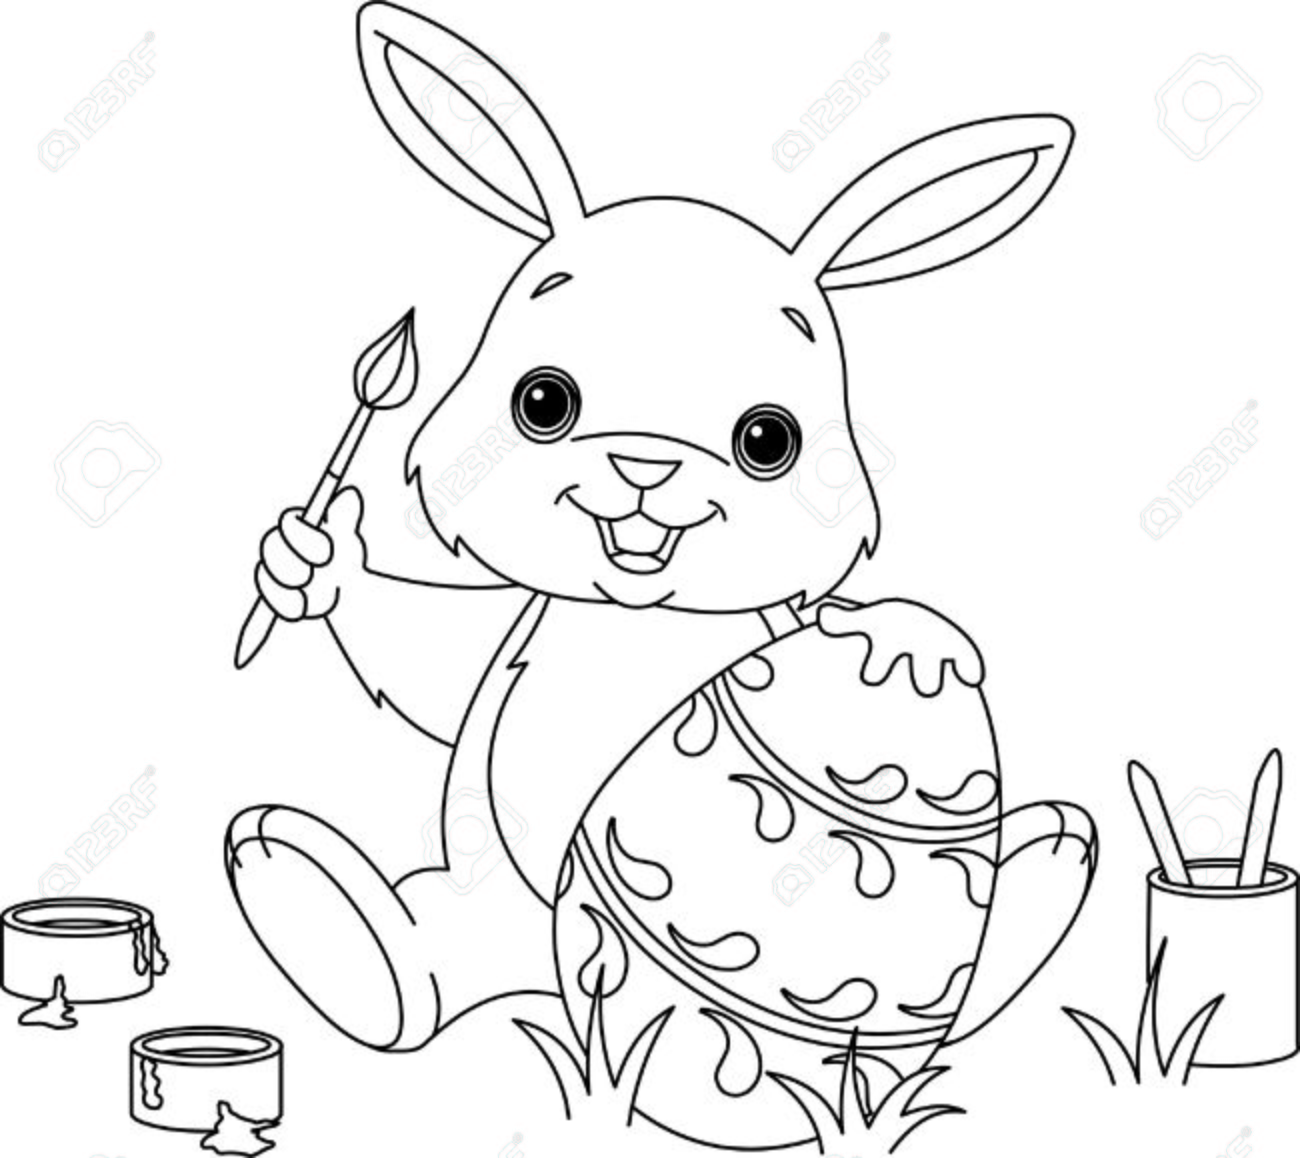 Coloring Page Of An Easter Bunny Painting An Egg Royalty Free ...